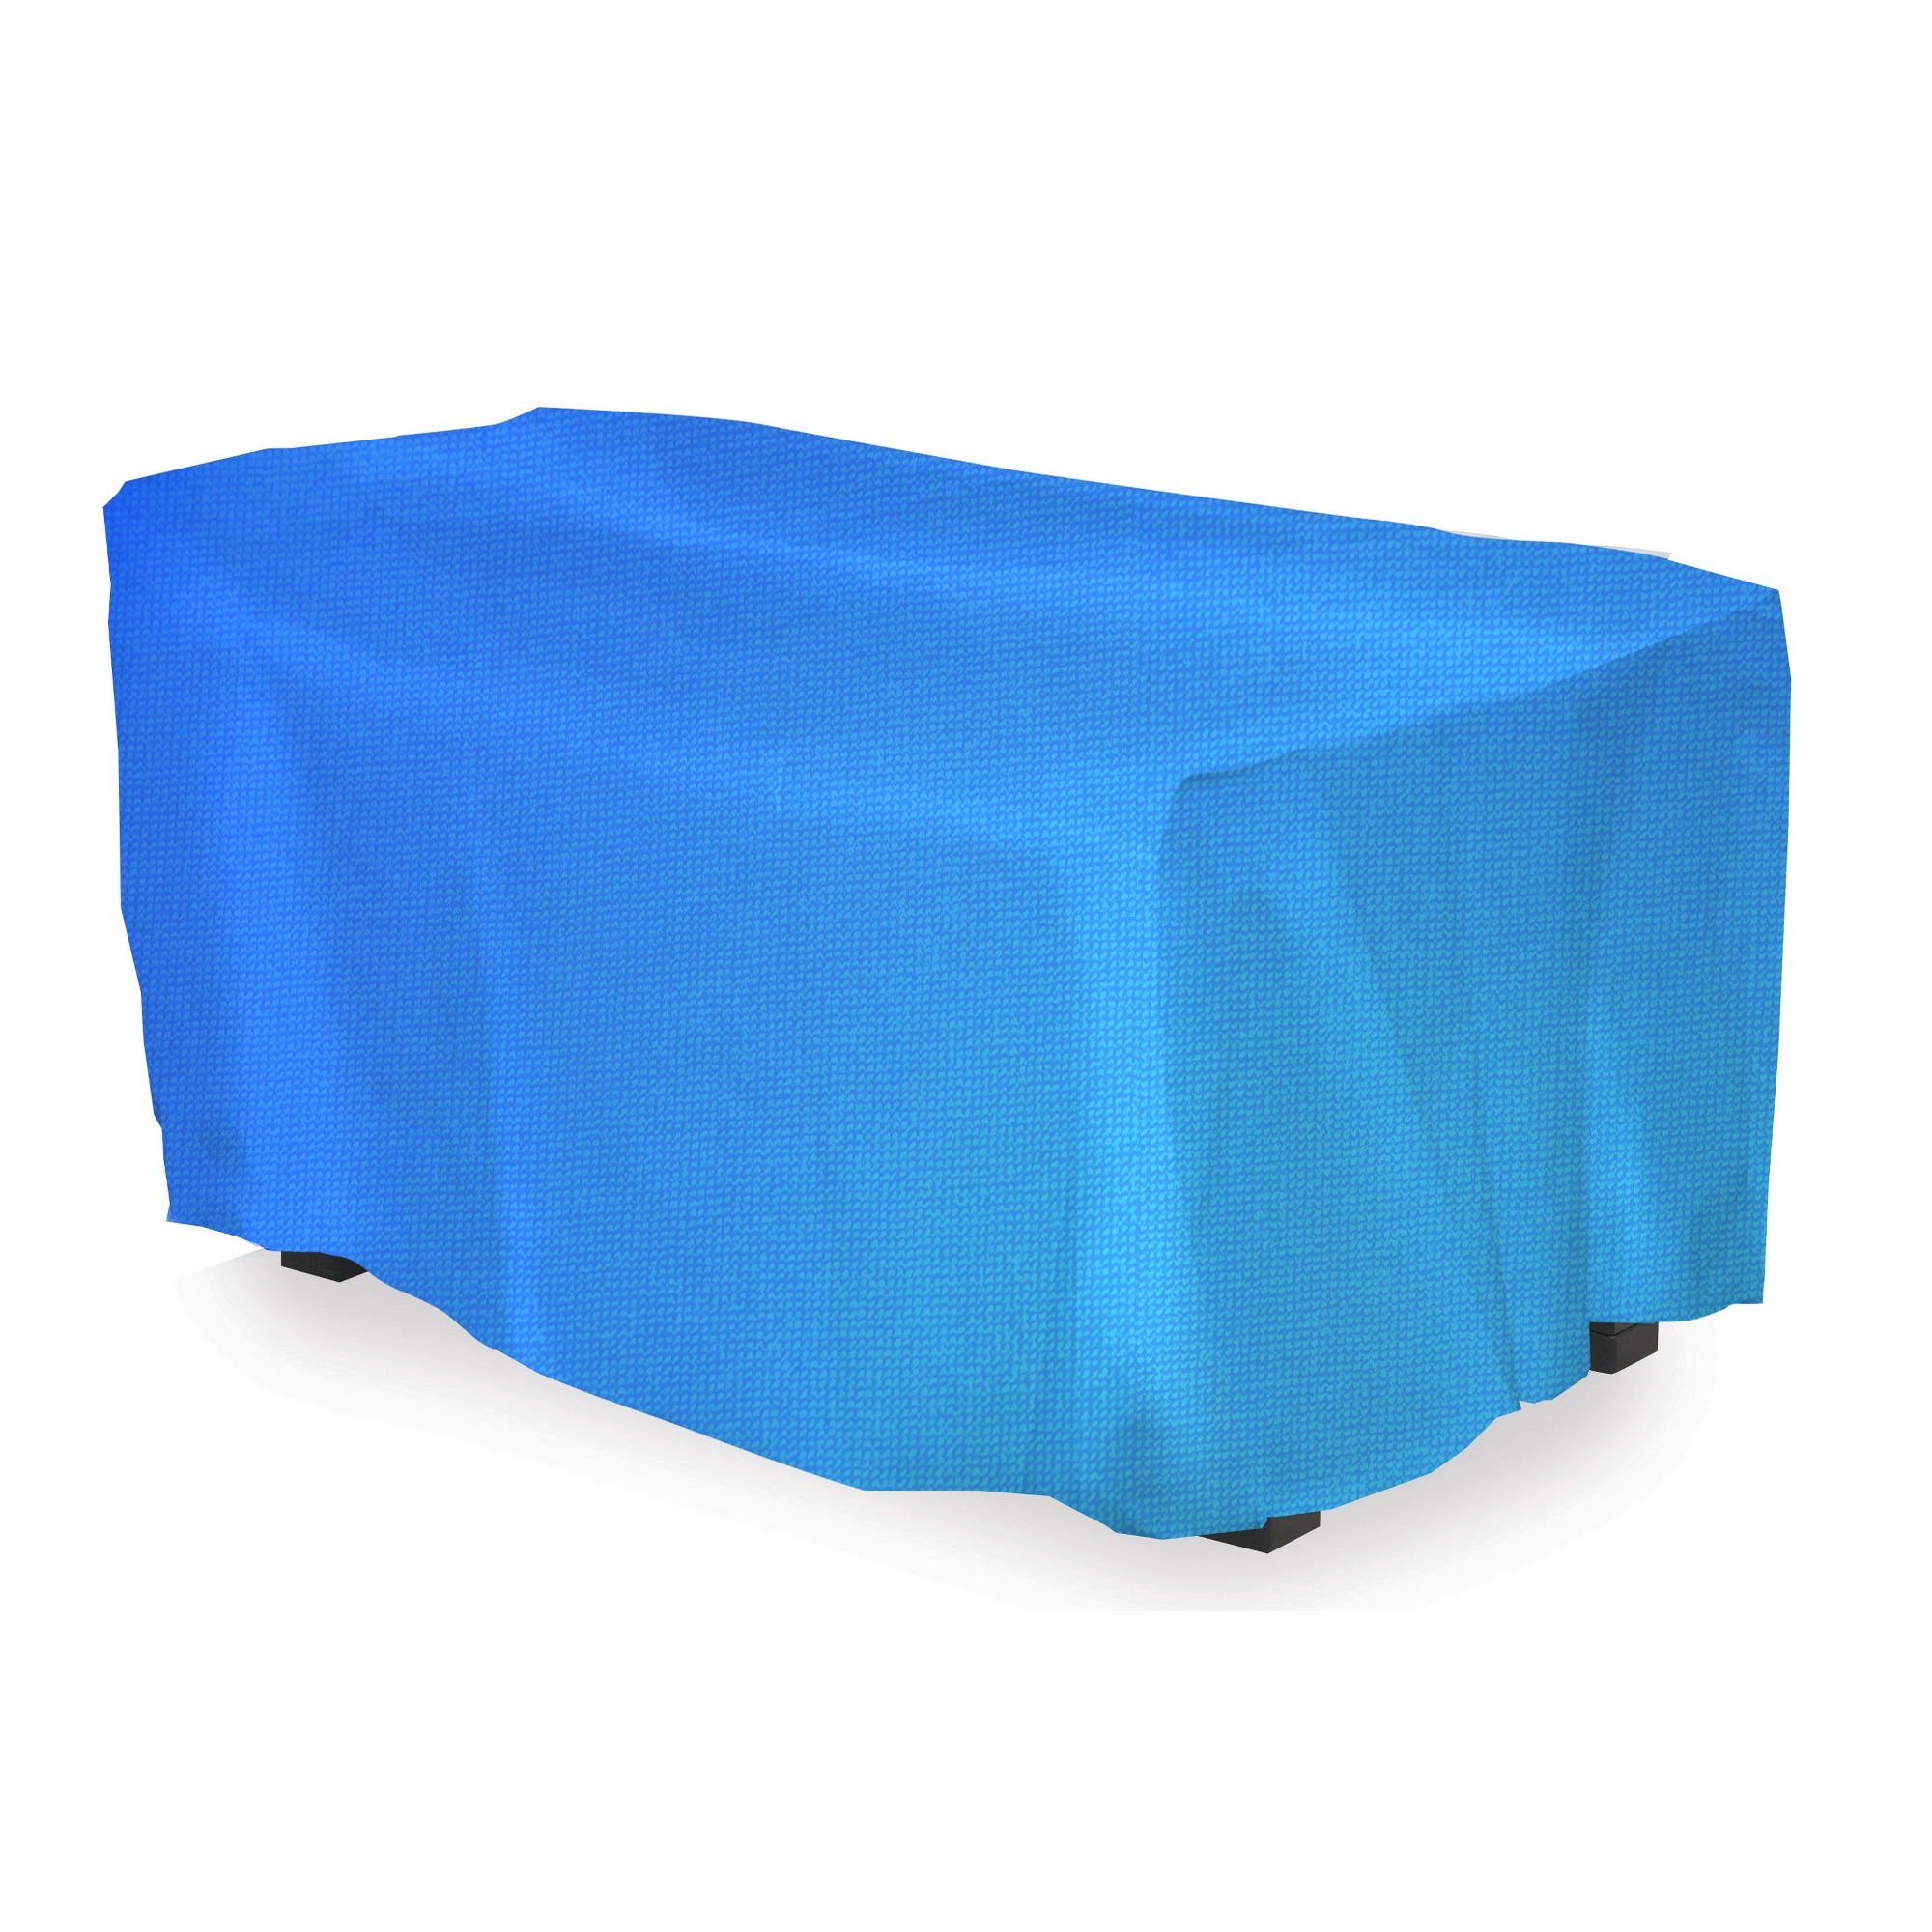 Garlando Table Football Table  Protective Cover